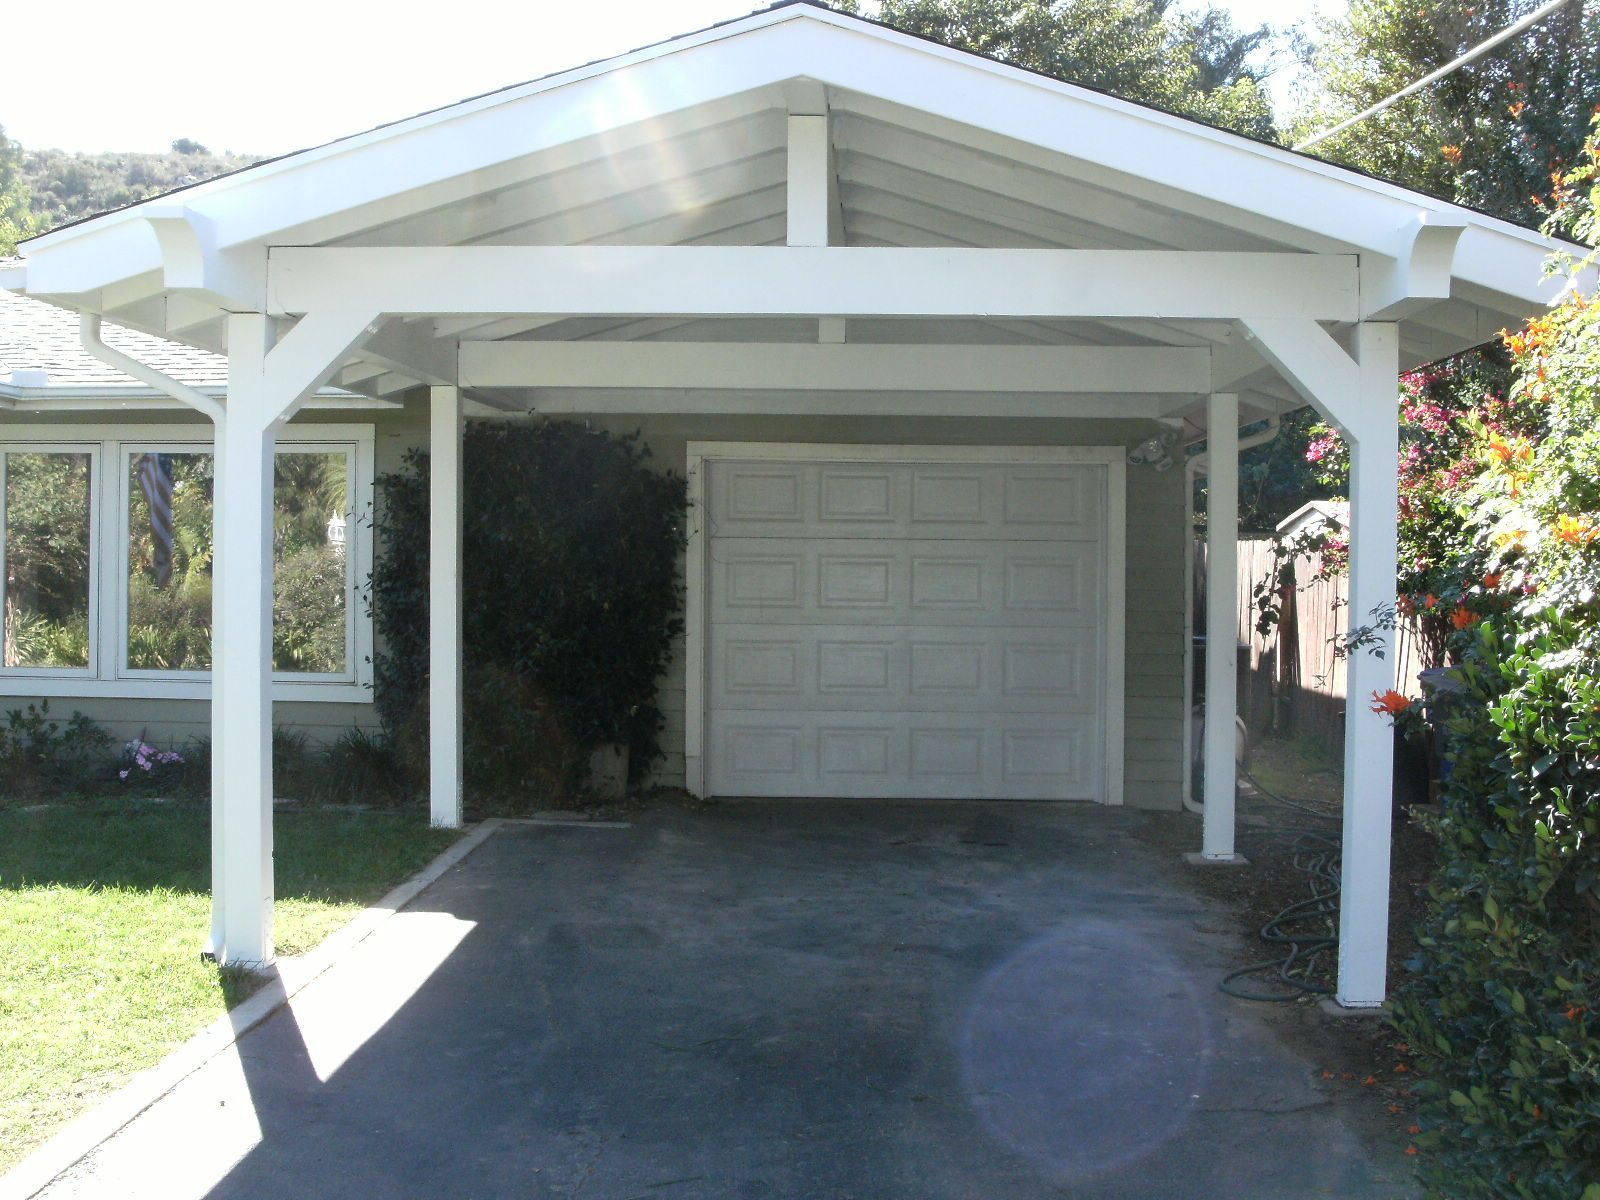 Carport pergola ideas carports such pinterest for 4 car carport plans